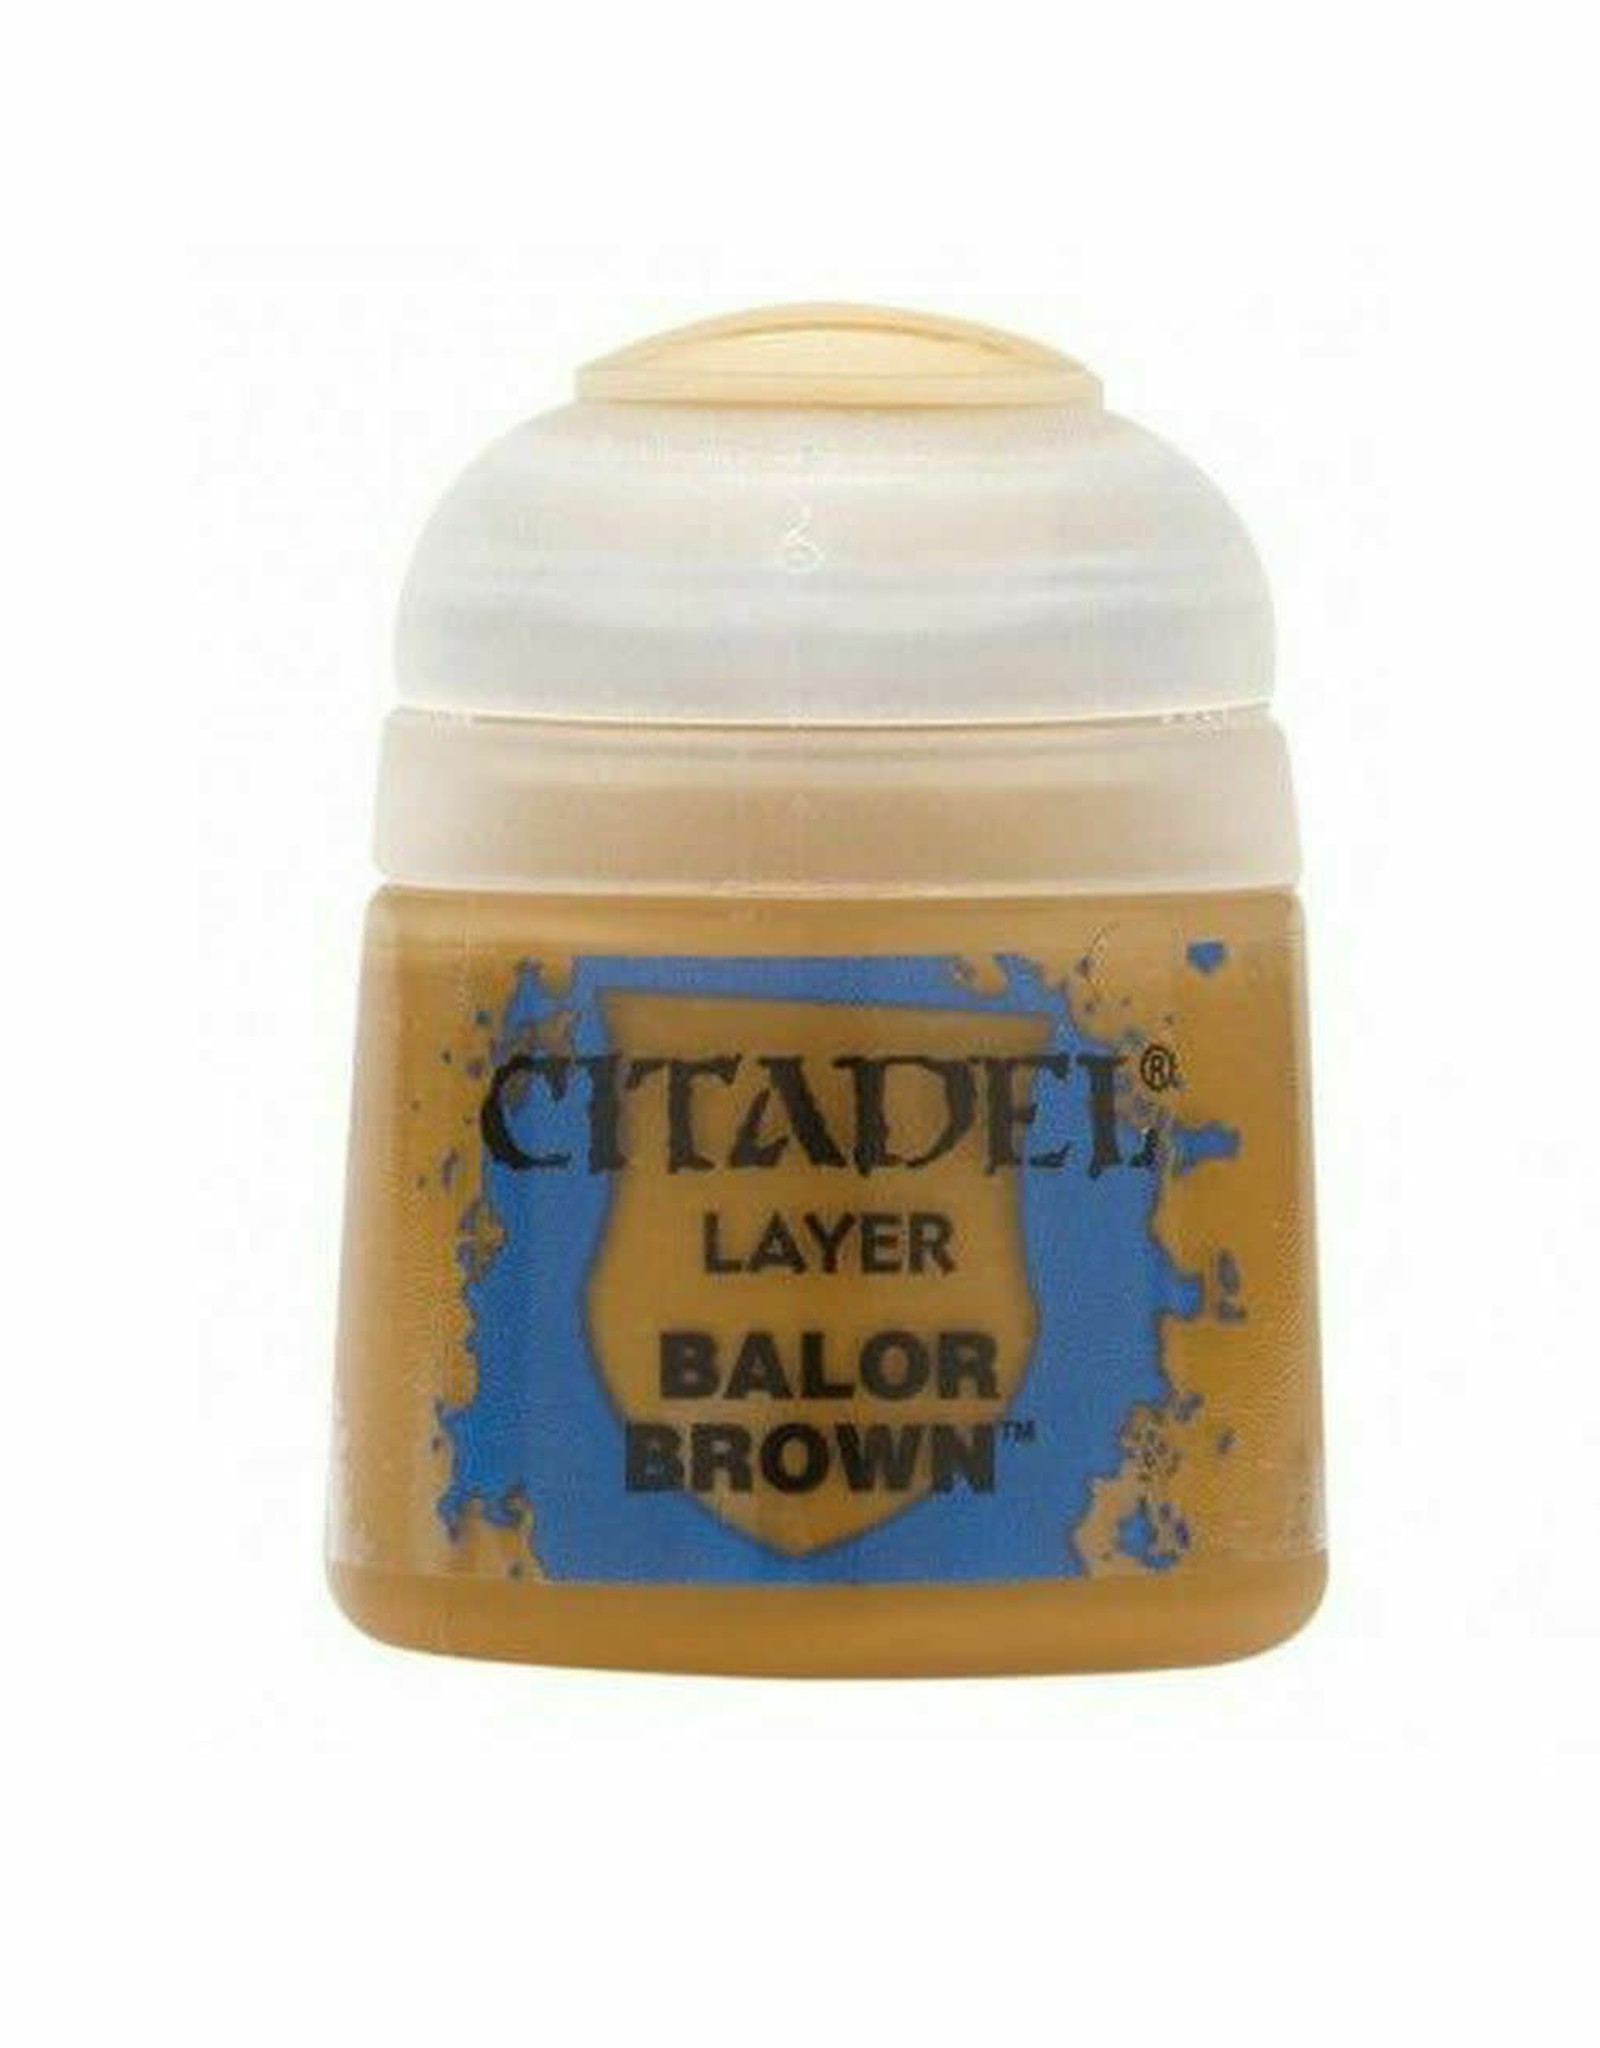 Citadel Paint Balor Brown